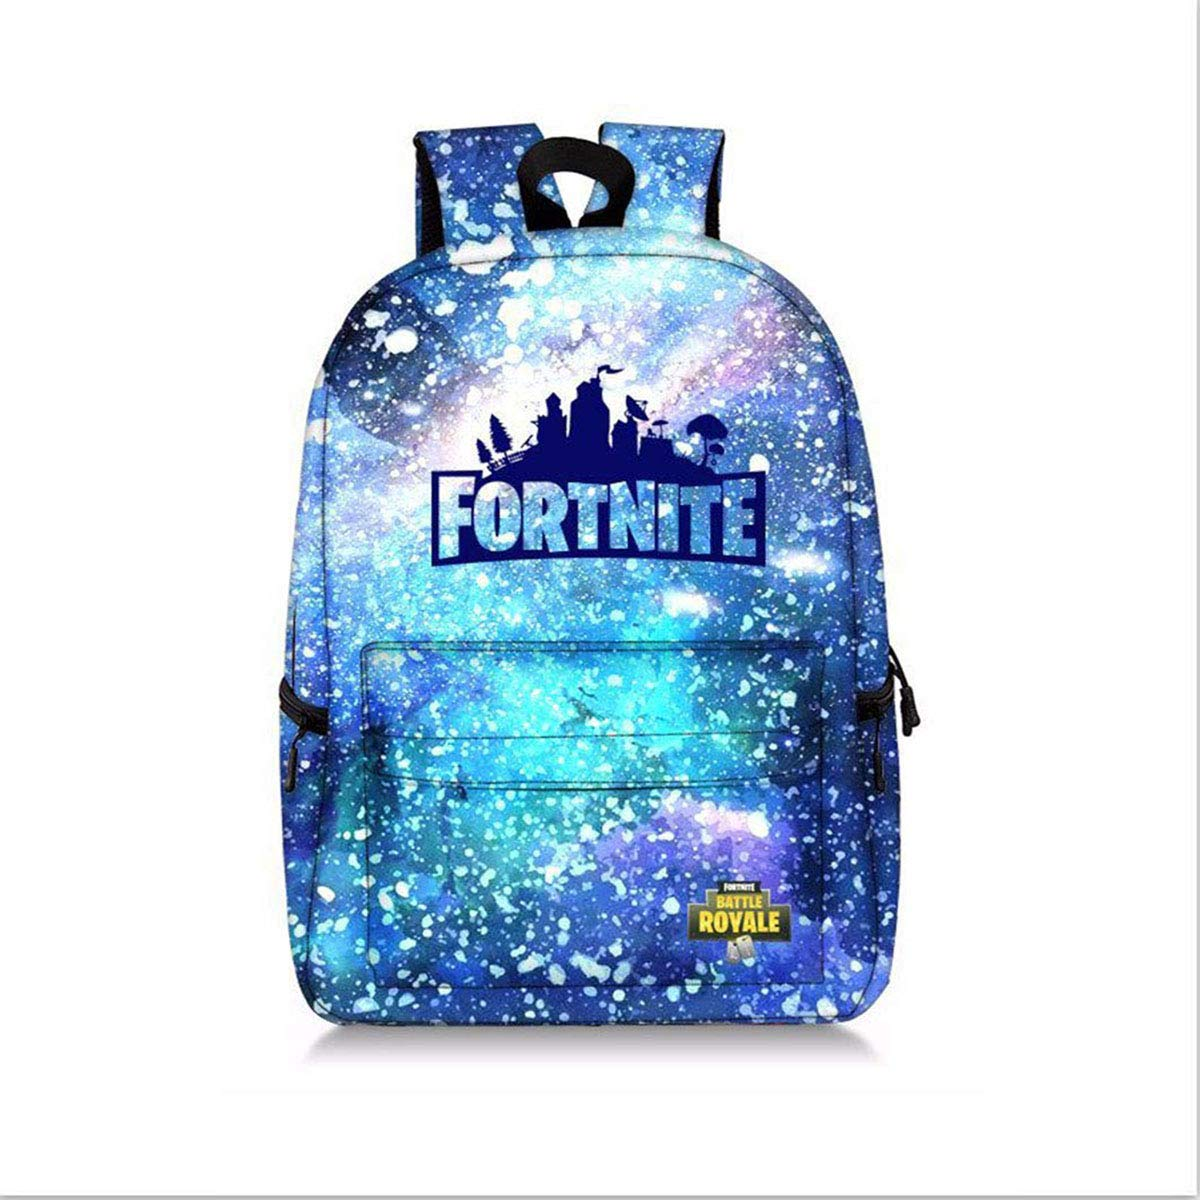 Battle Royale Games Luminous Bright Galaxy Backpack for Boys School Bag Travel Daily Laptop Backpack Fortnite Fans Gifts (H03)